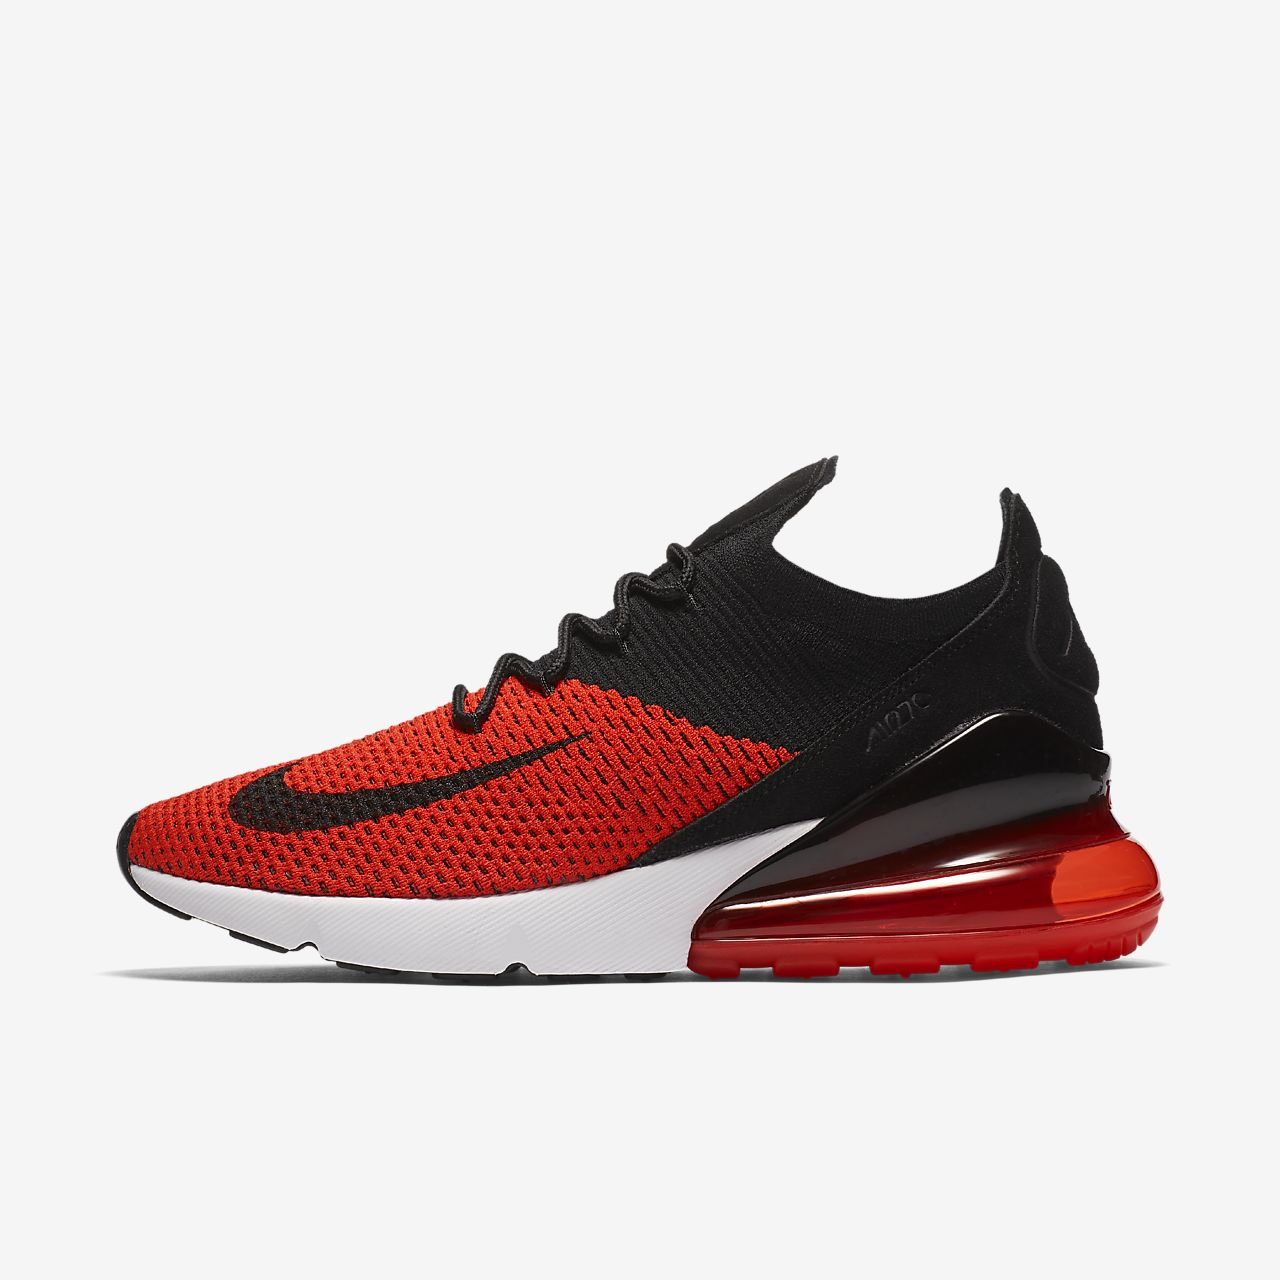 b0eaafe22707 Nike Air Max 270 Flyknit Men s Shoe. Nike.com